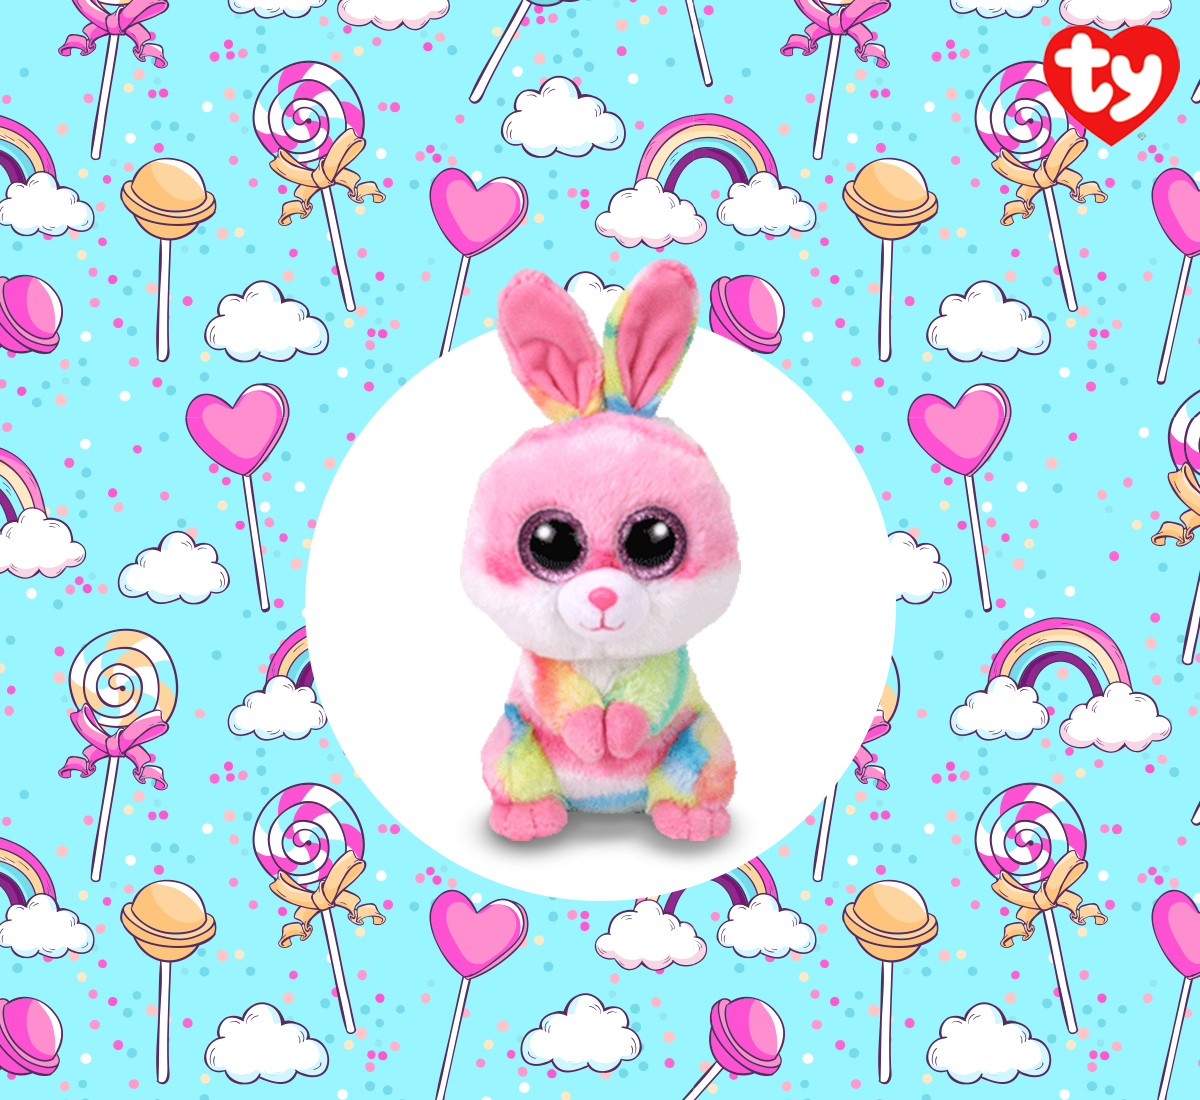 There's no bunny sweeter than Lollipop! What's your candy